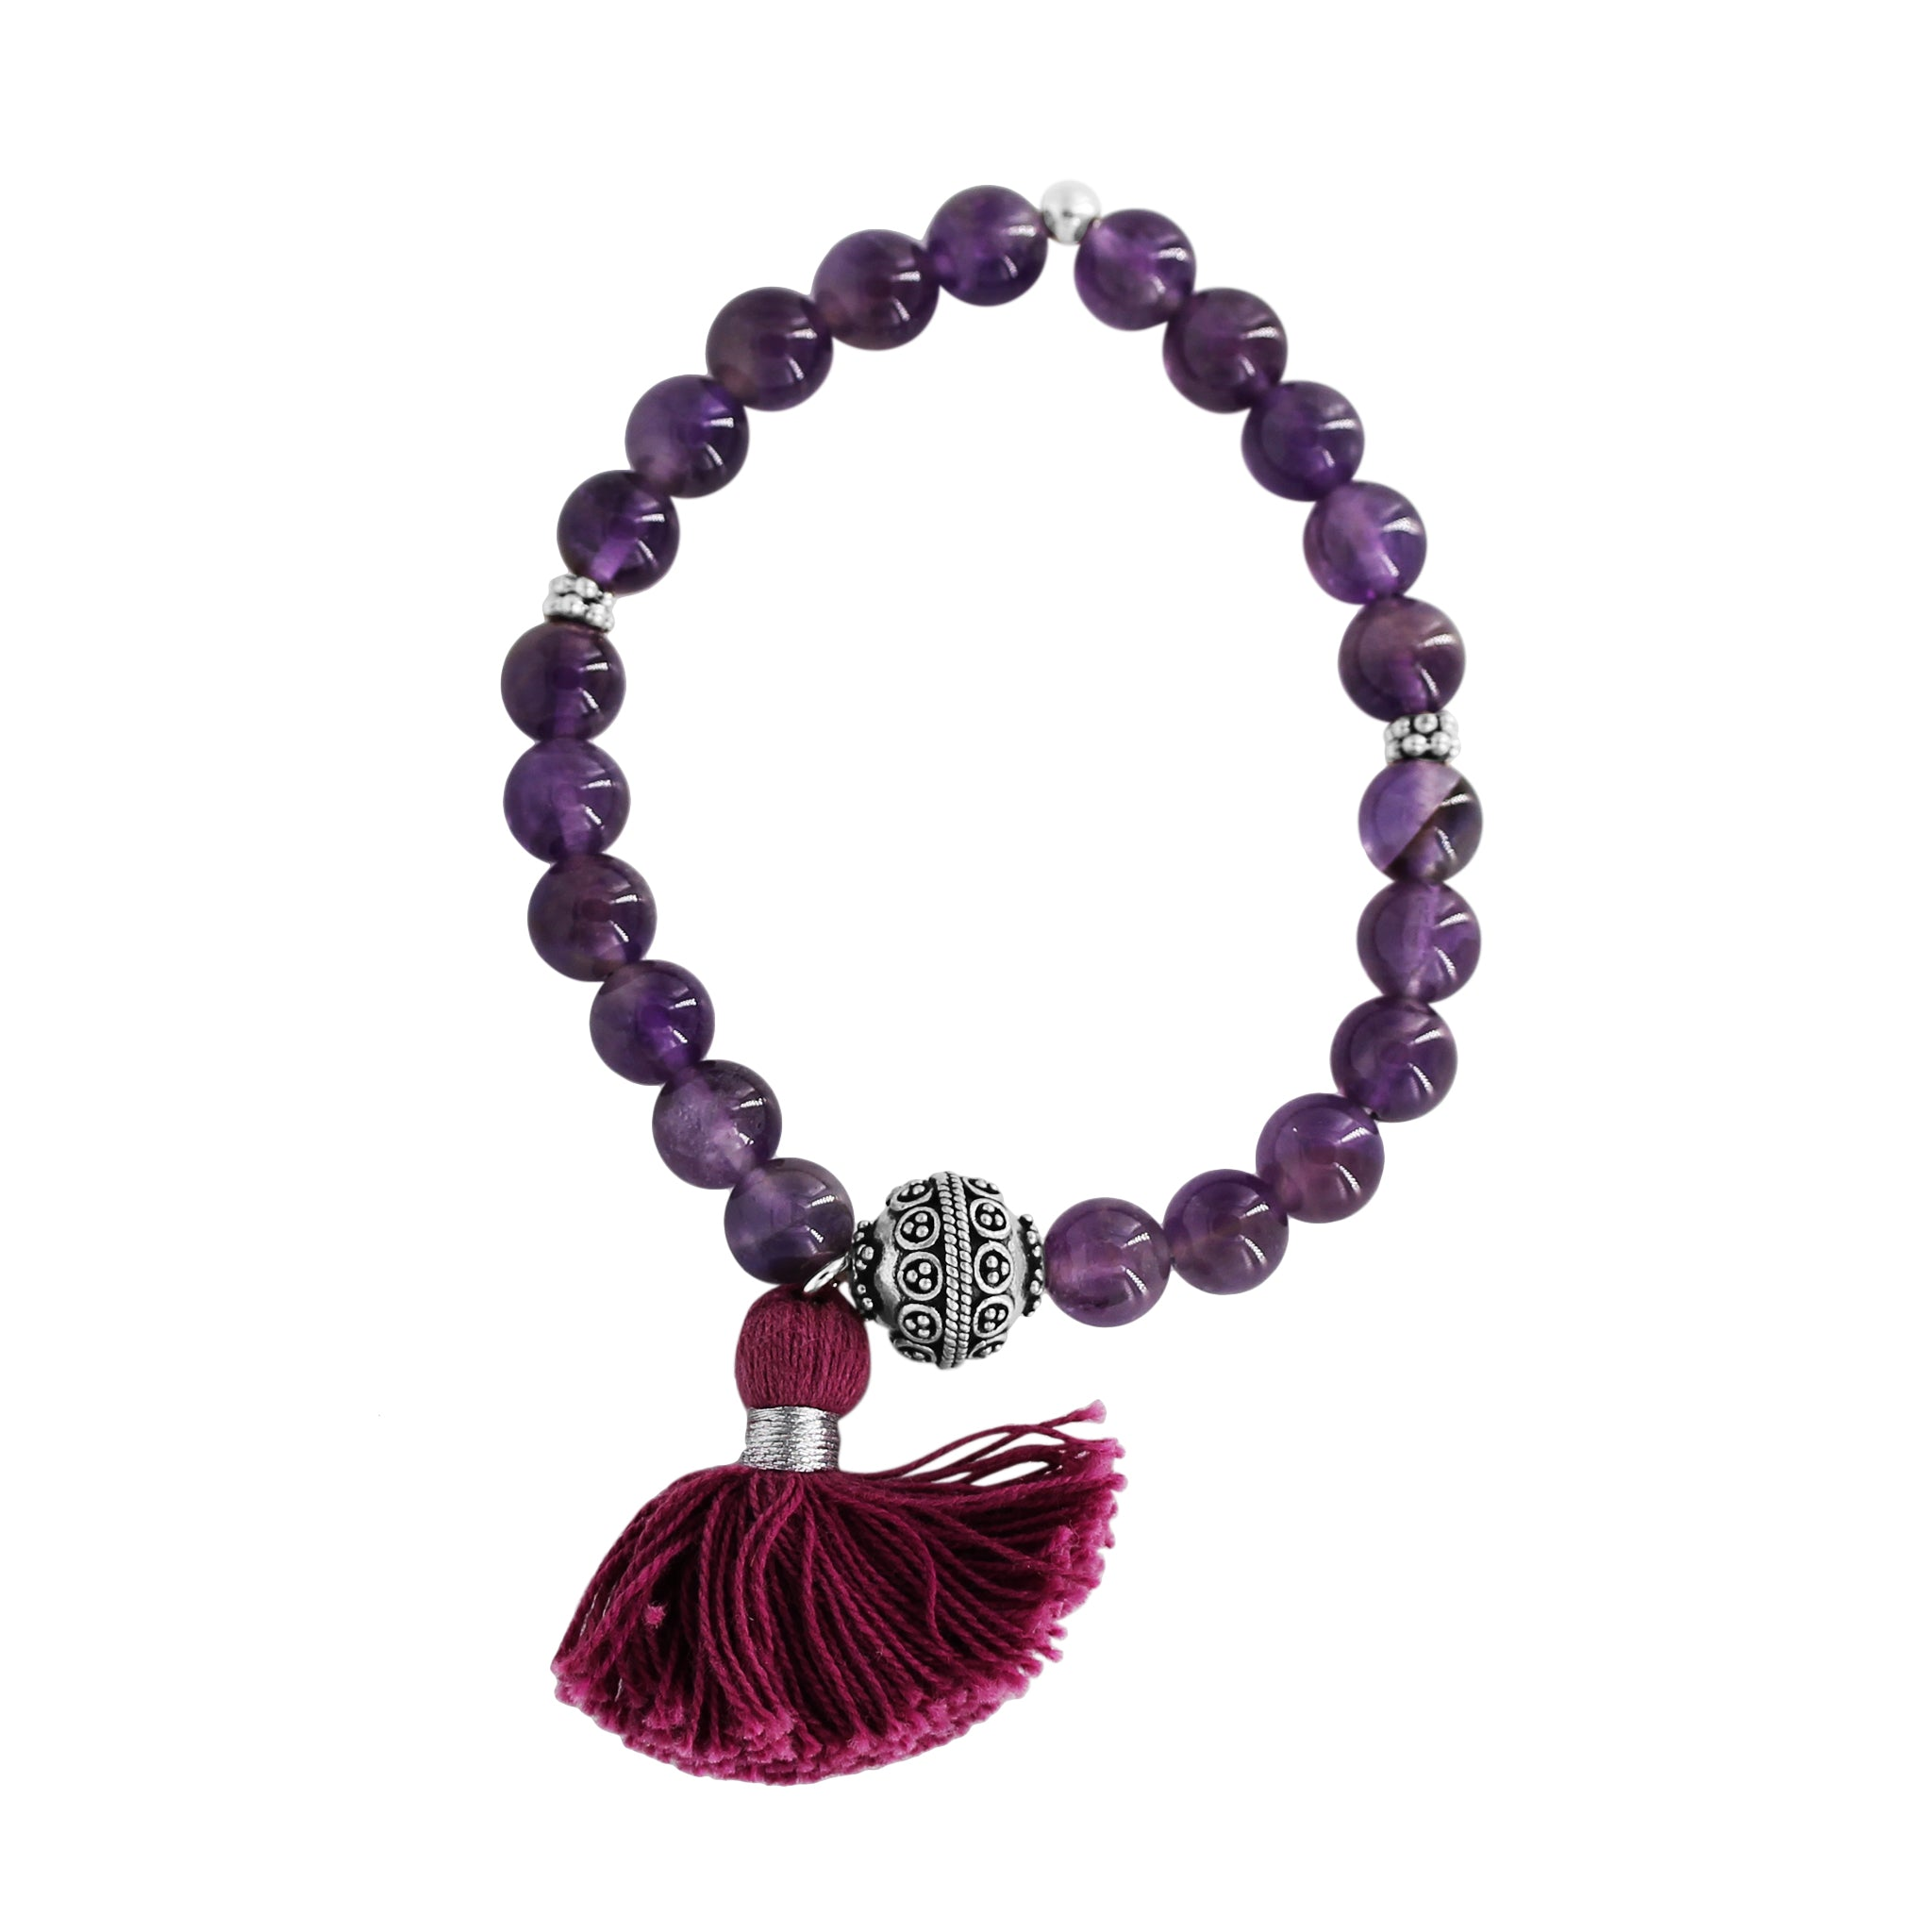 Sweet Dreams Amethyst Mana Bracelet - Sati Gems Hawaii